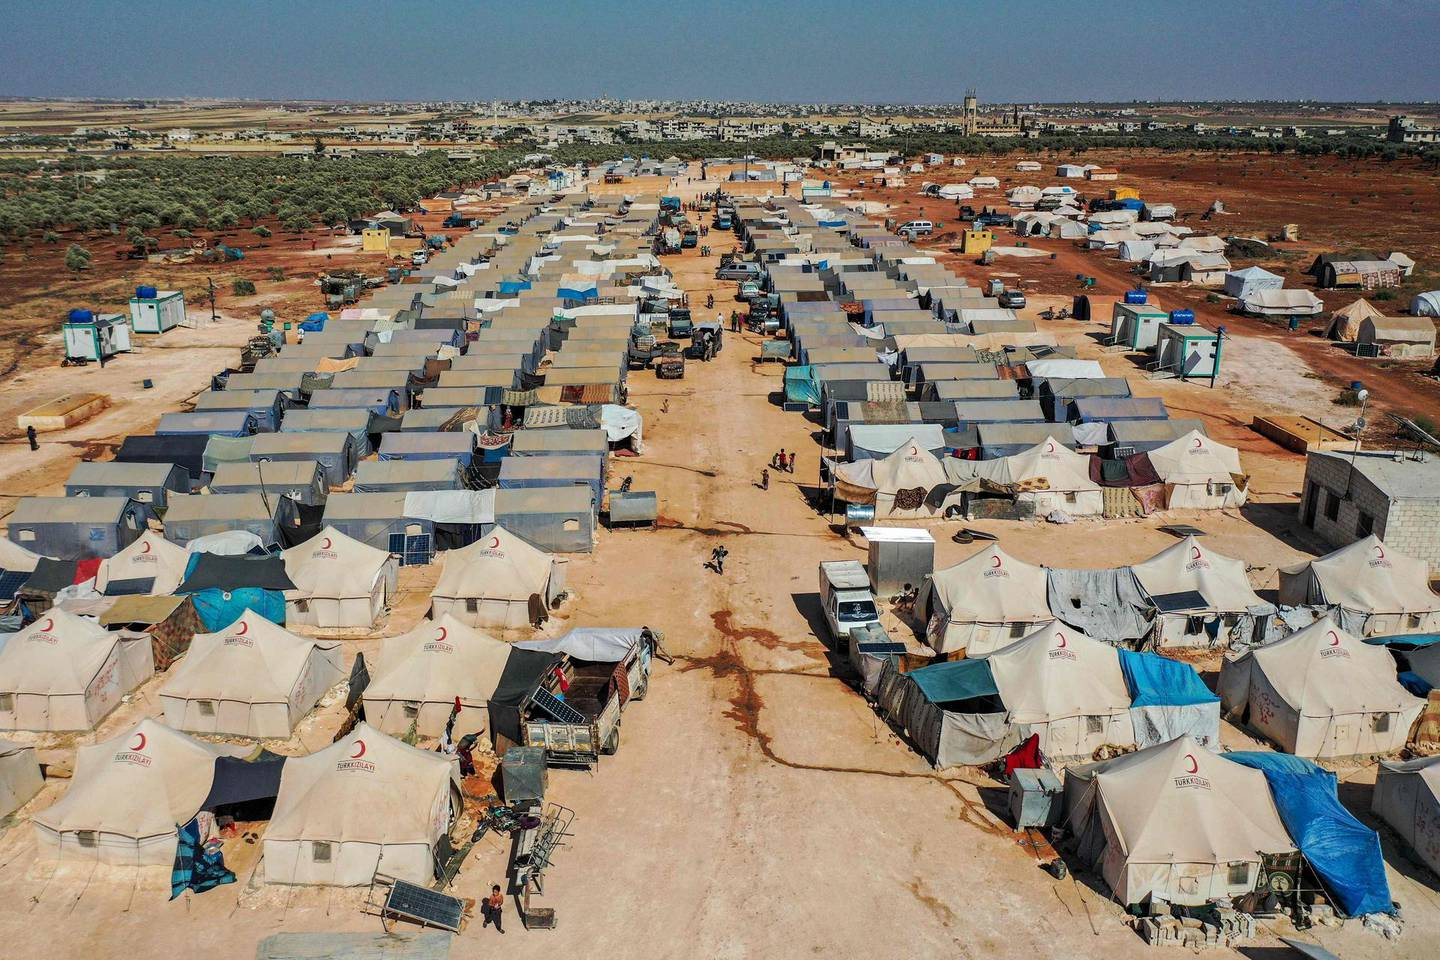 This picture taken on July 9, 2020 shows an aerial view of tents at the Azraq camp for displaced Syrians near the town of Maaret Misrin in Syria's northwestern Idlib province, sheltering several hundred families displaced by conflict from the northern Hama and southern and eastern Idlib countrysides.  / AFP / Omar HAJ KADOUR